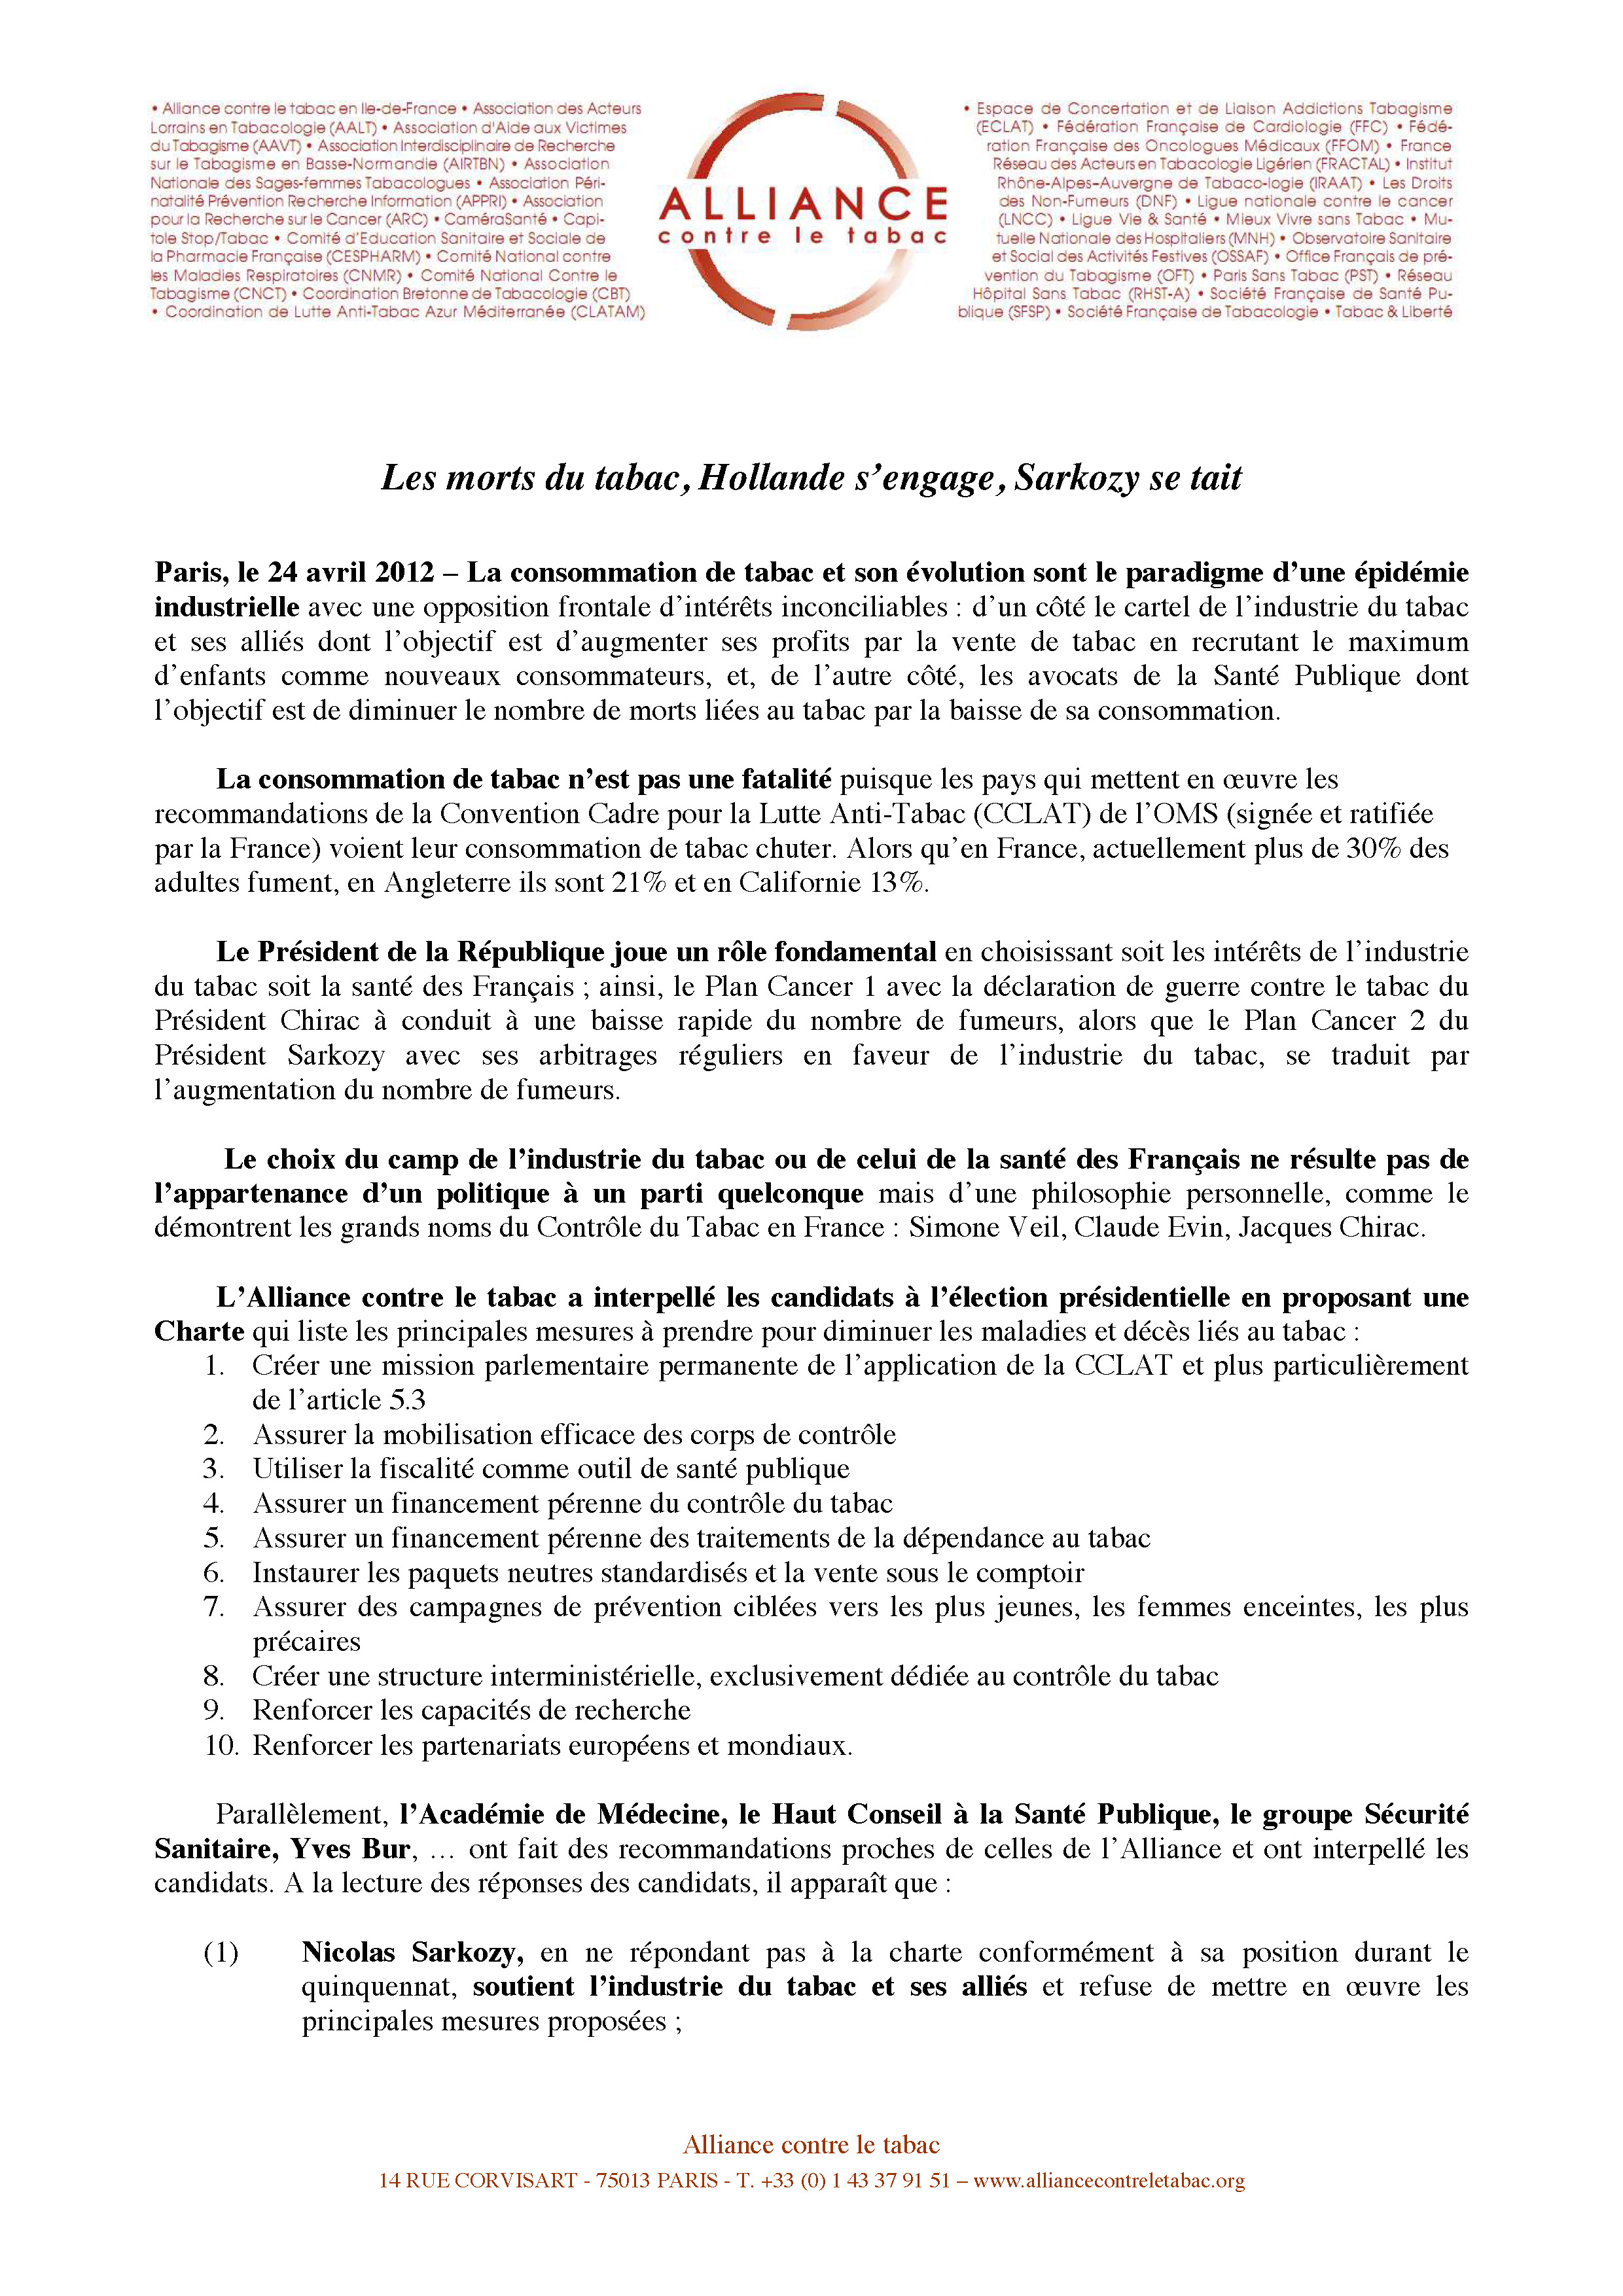 Alliance-CP_les-morts-du-tabac-hollande-s-engage-sarkozy-se-tait-24avr2012_Page_1.jpg